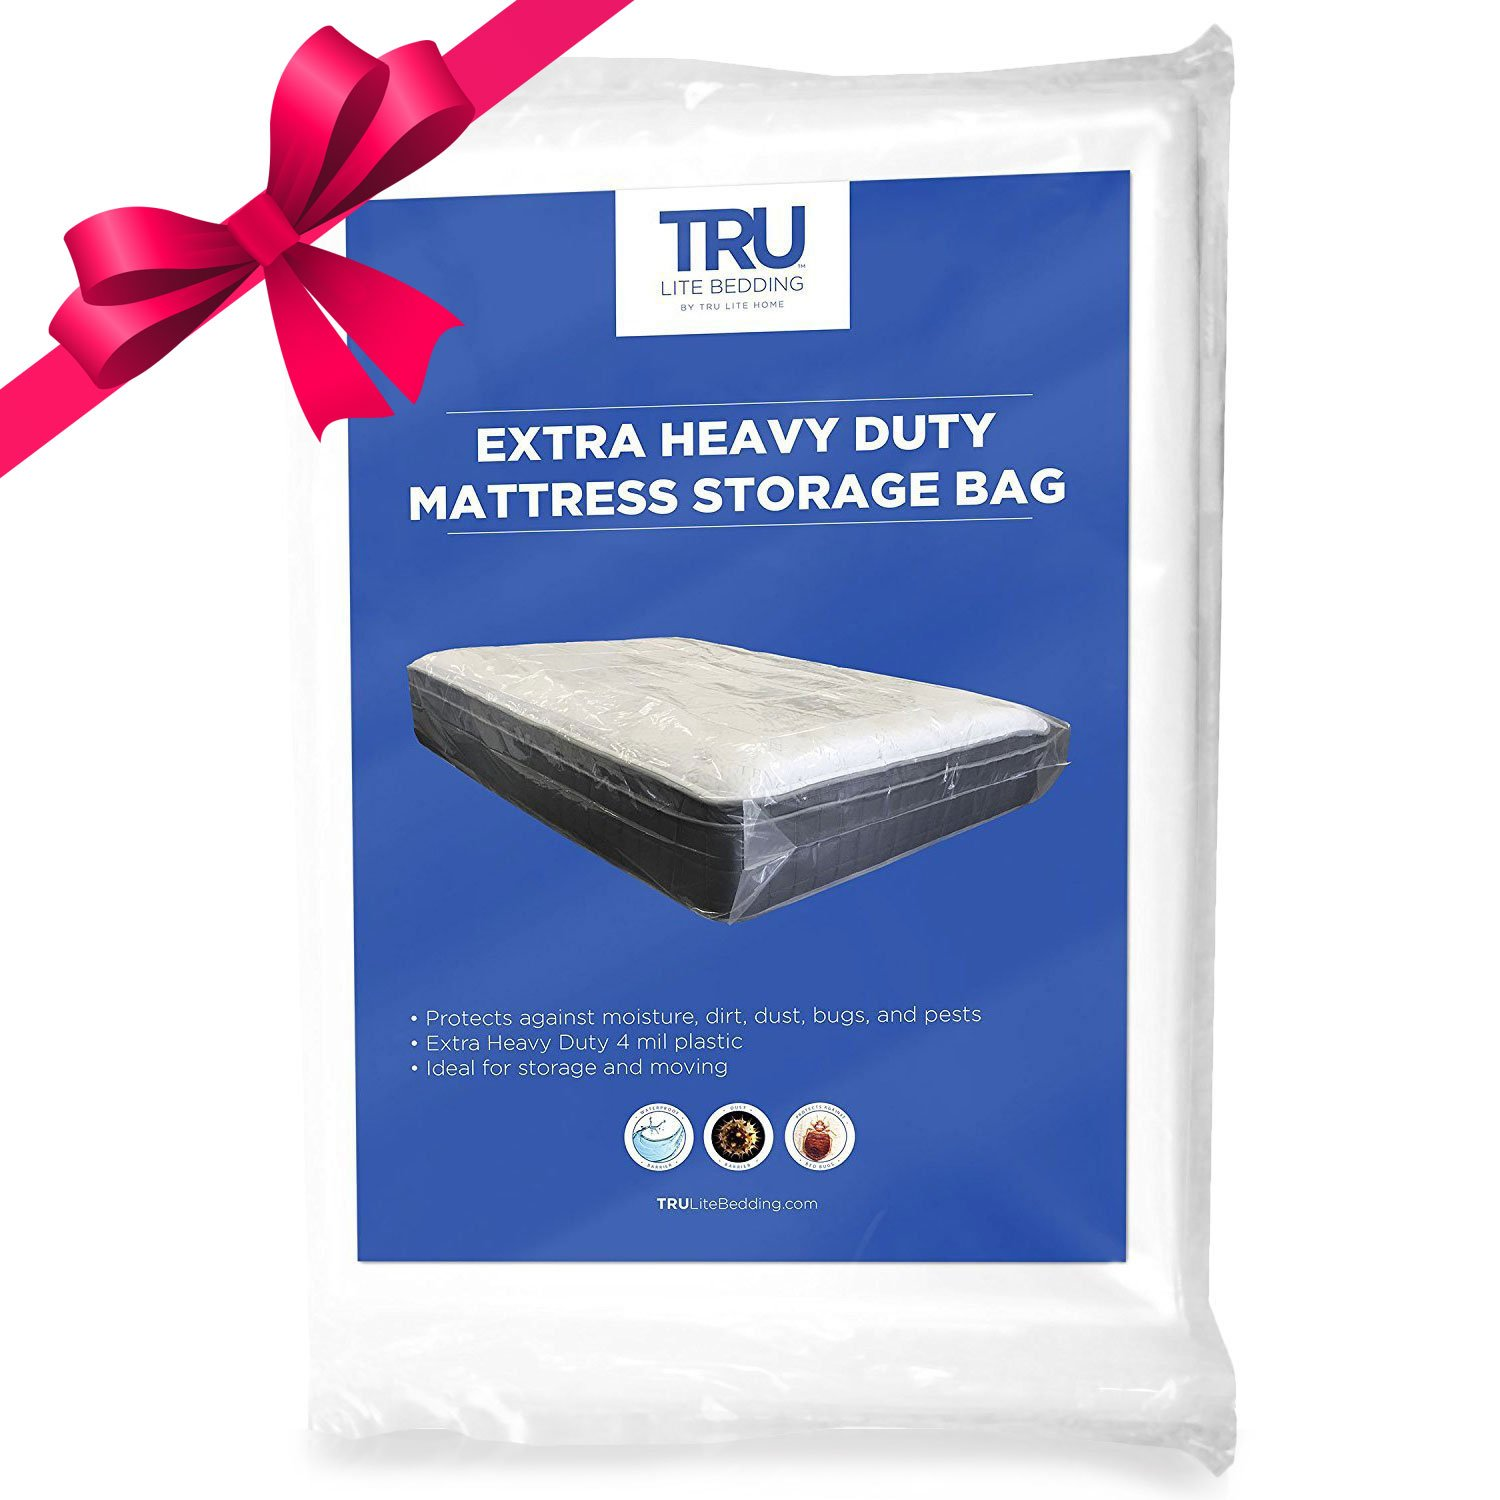 bag bath on seal storage shipping over overstock heavy mattress product free tite duty bedding orders sealable